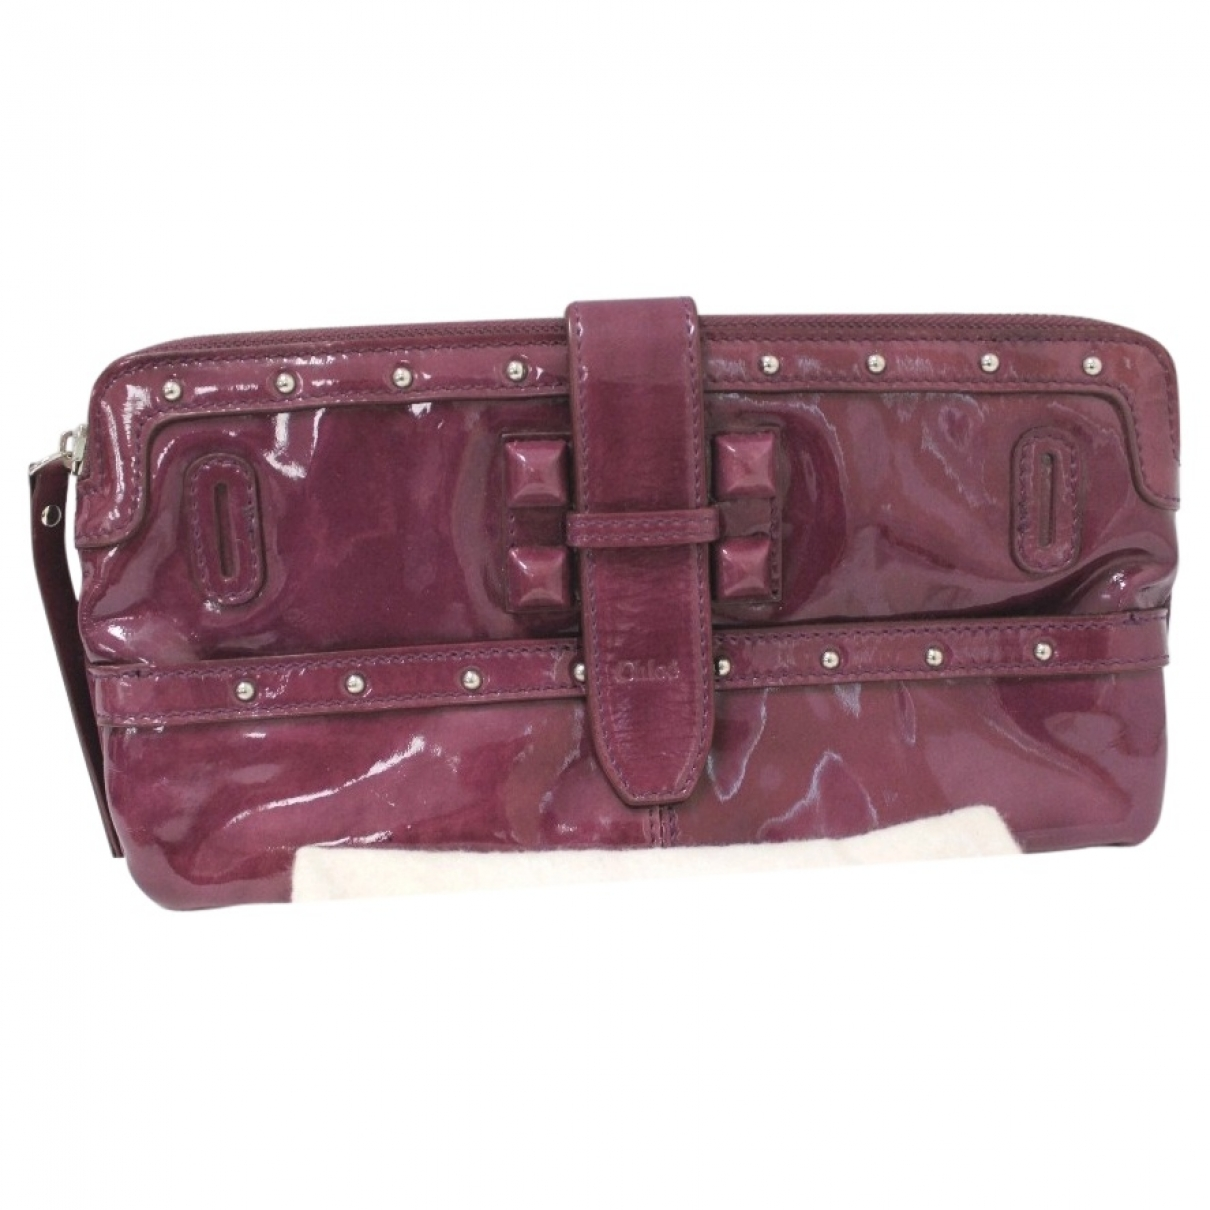 Chloé \N Purple Patent leather Clutch bag for Women \N